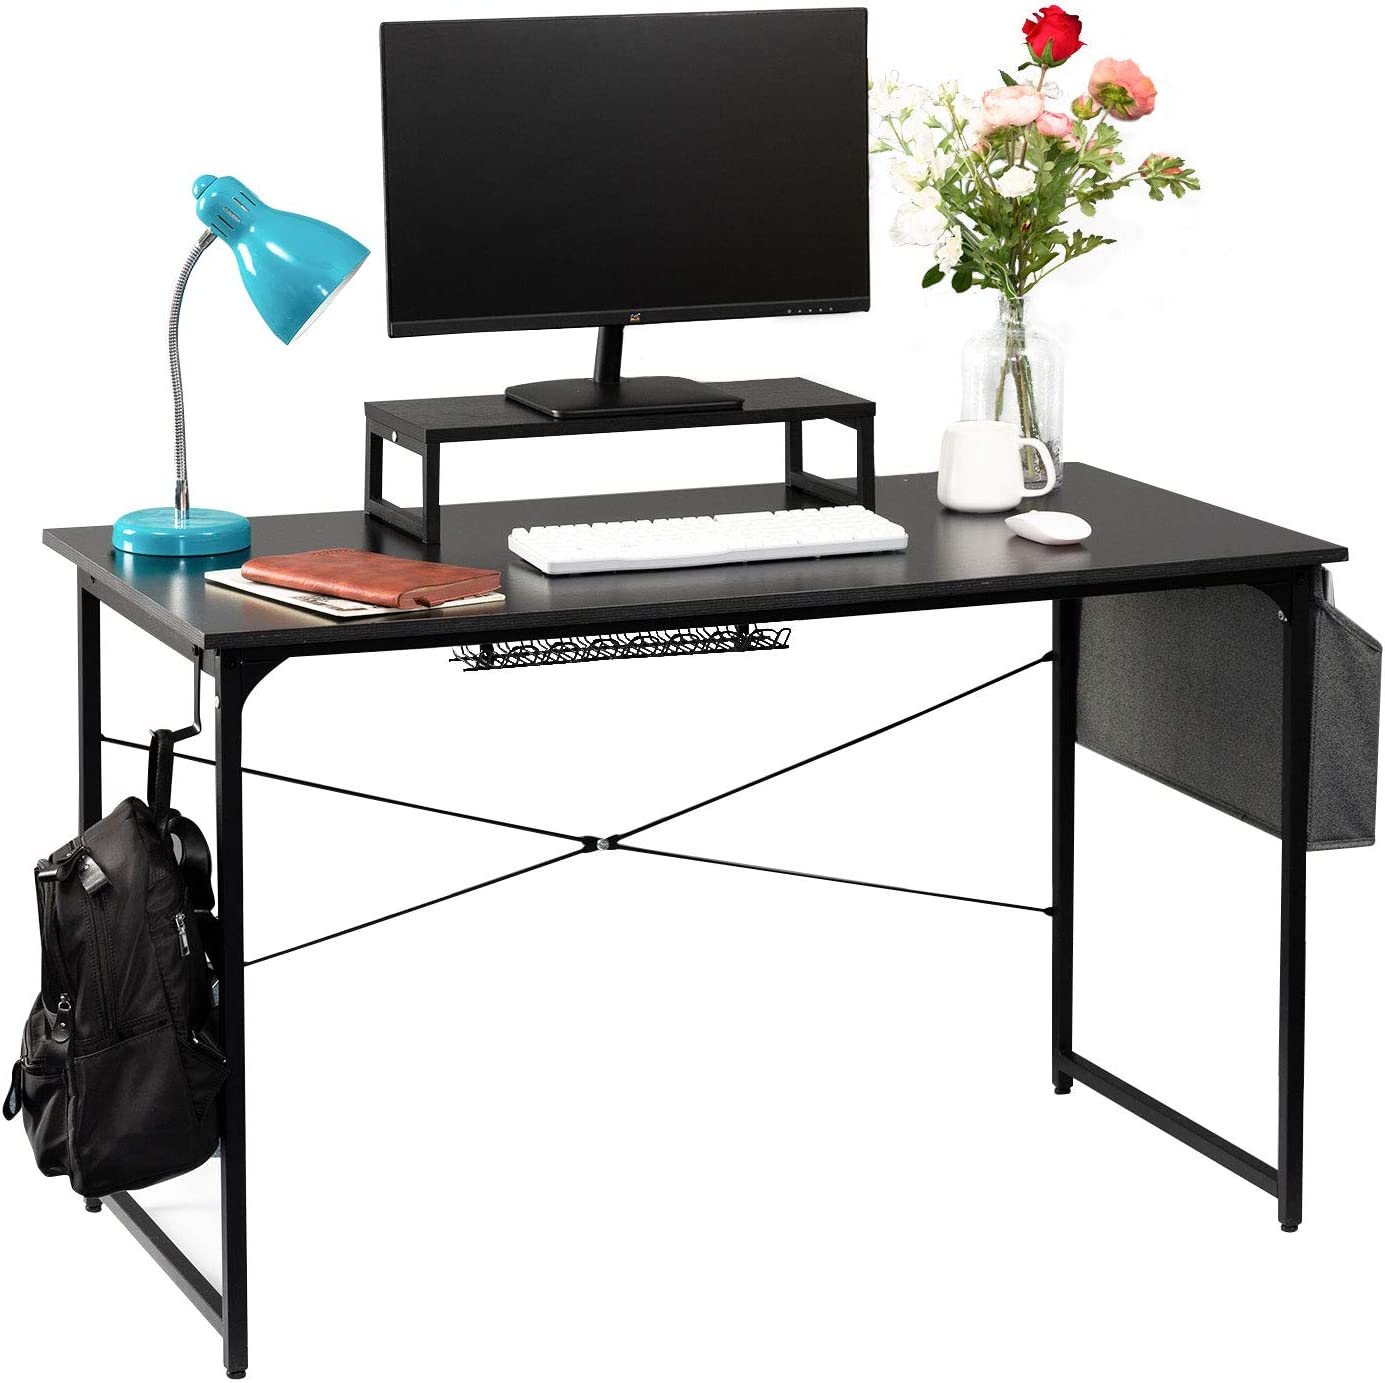 GAJOO Computer Desk Work Home Office Desk Writing Study Desk 47inch,Modern Simple Student School Study Desk with Monitor Stand Storage Bag and Plug-in Row Storage for Home Office,Black